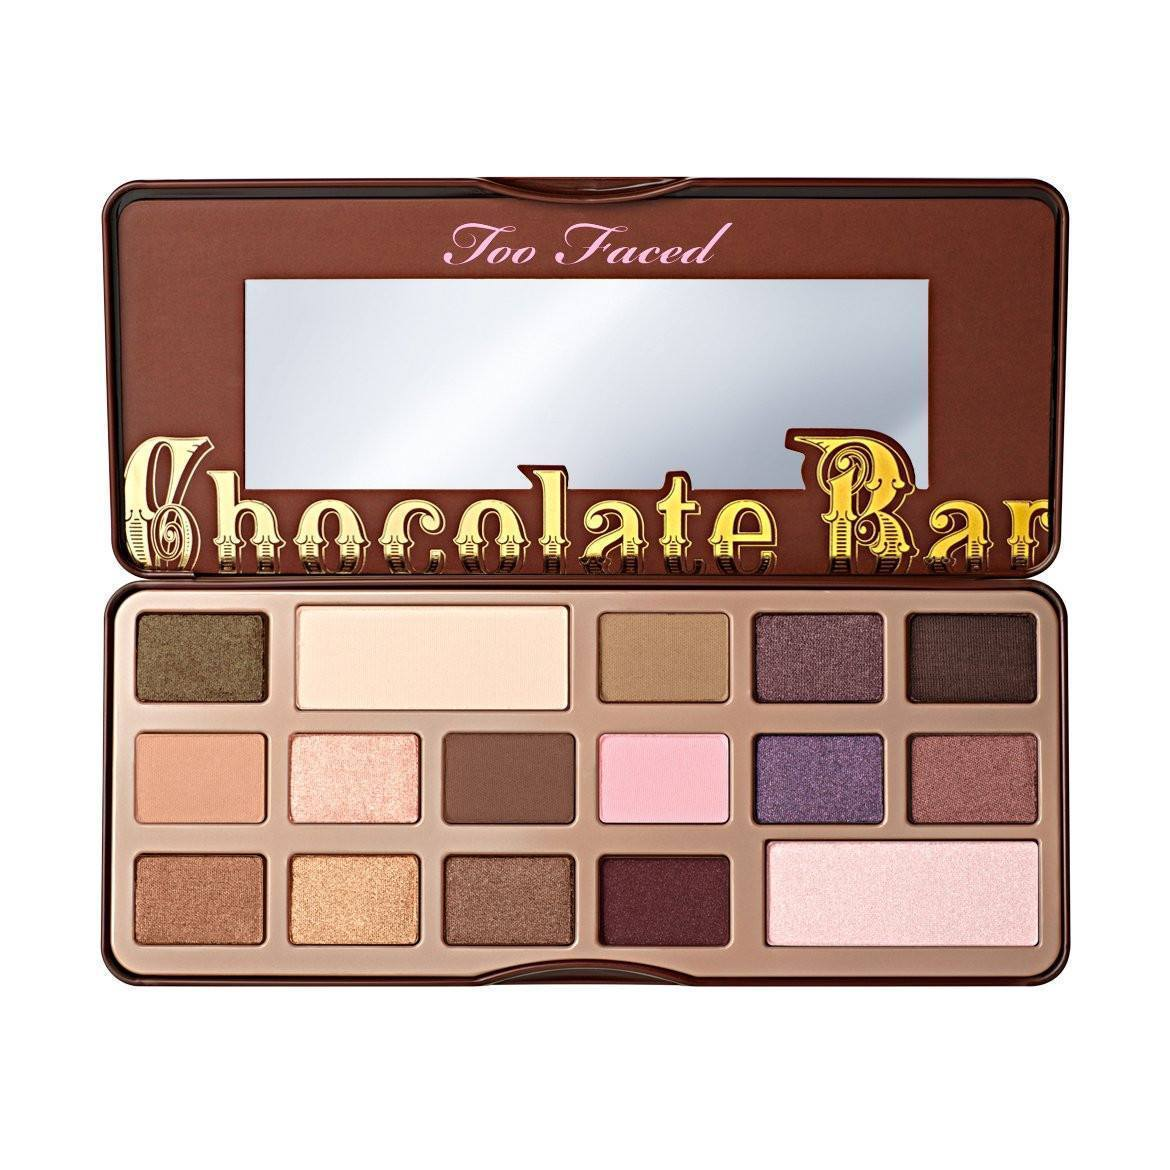 Too Faced eyeshadow palette Too Faced The Chocolate Bar Palette